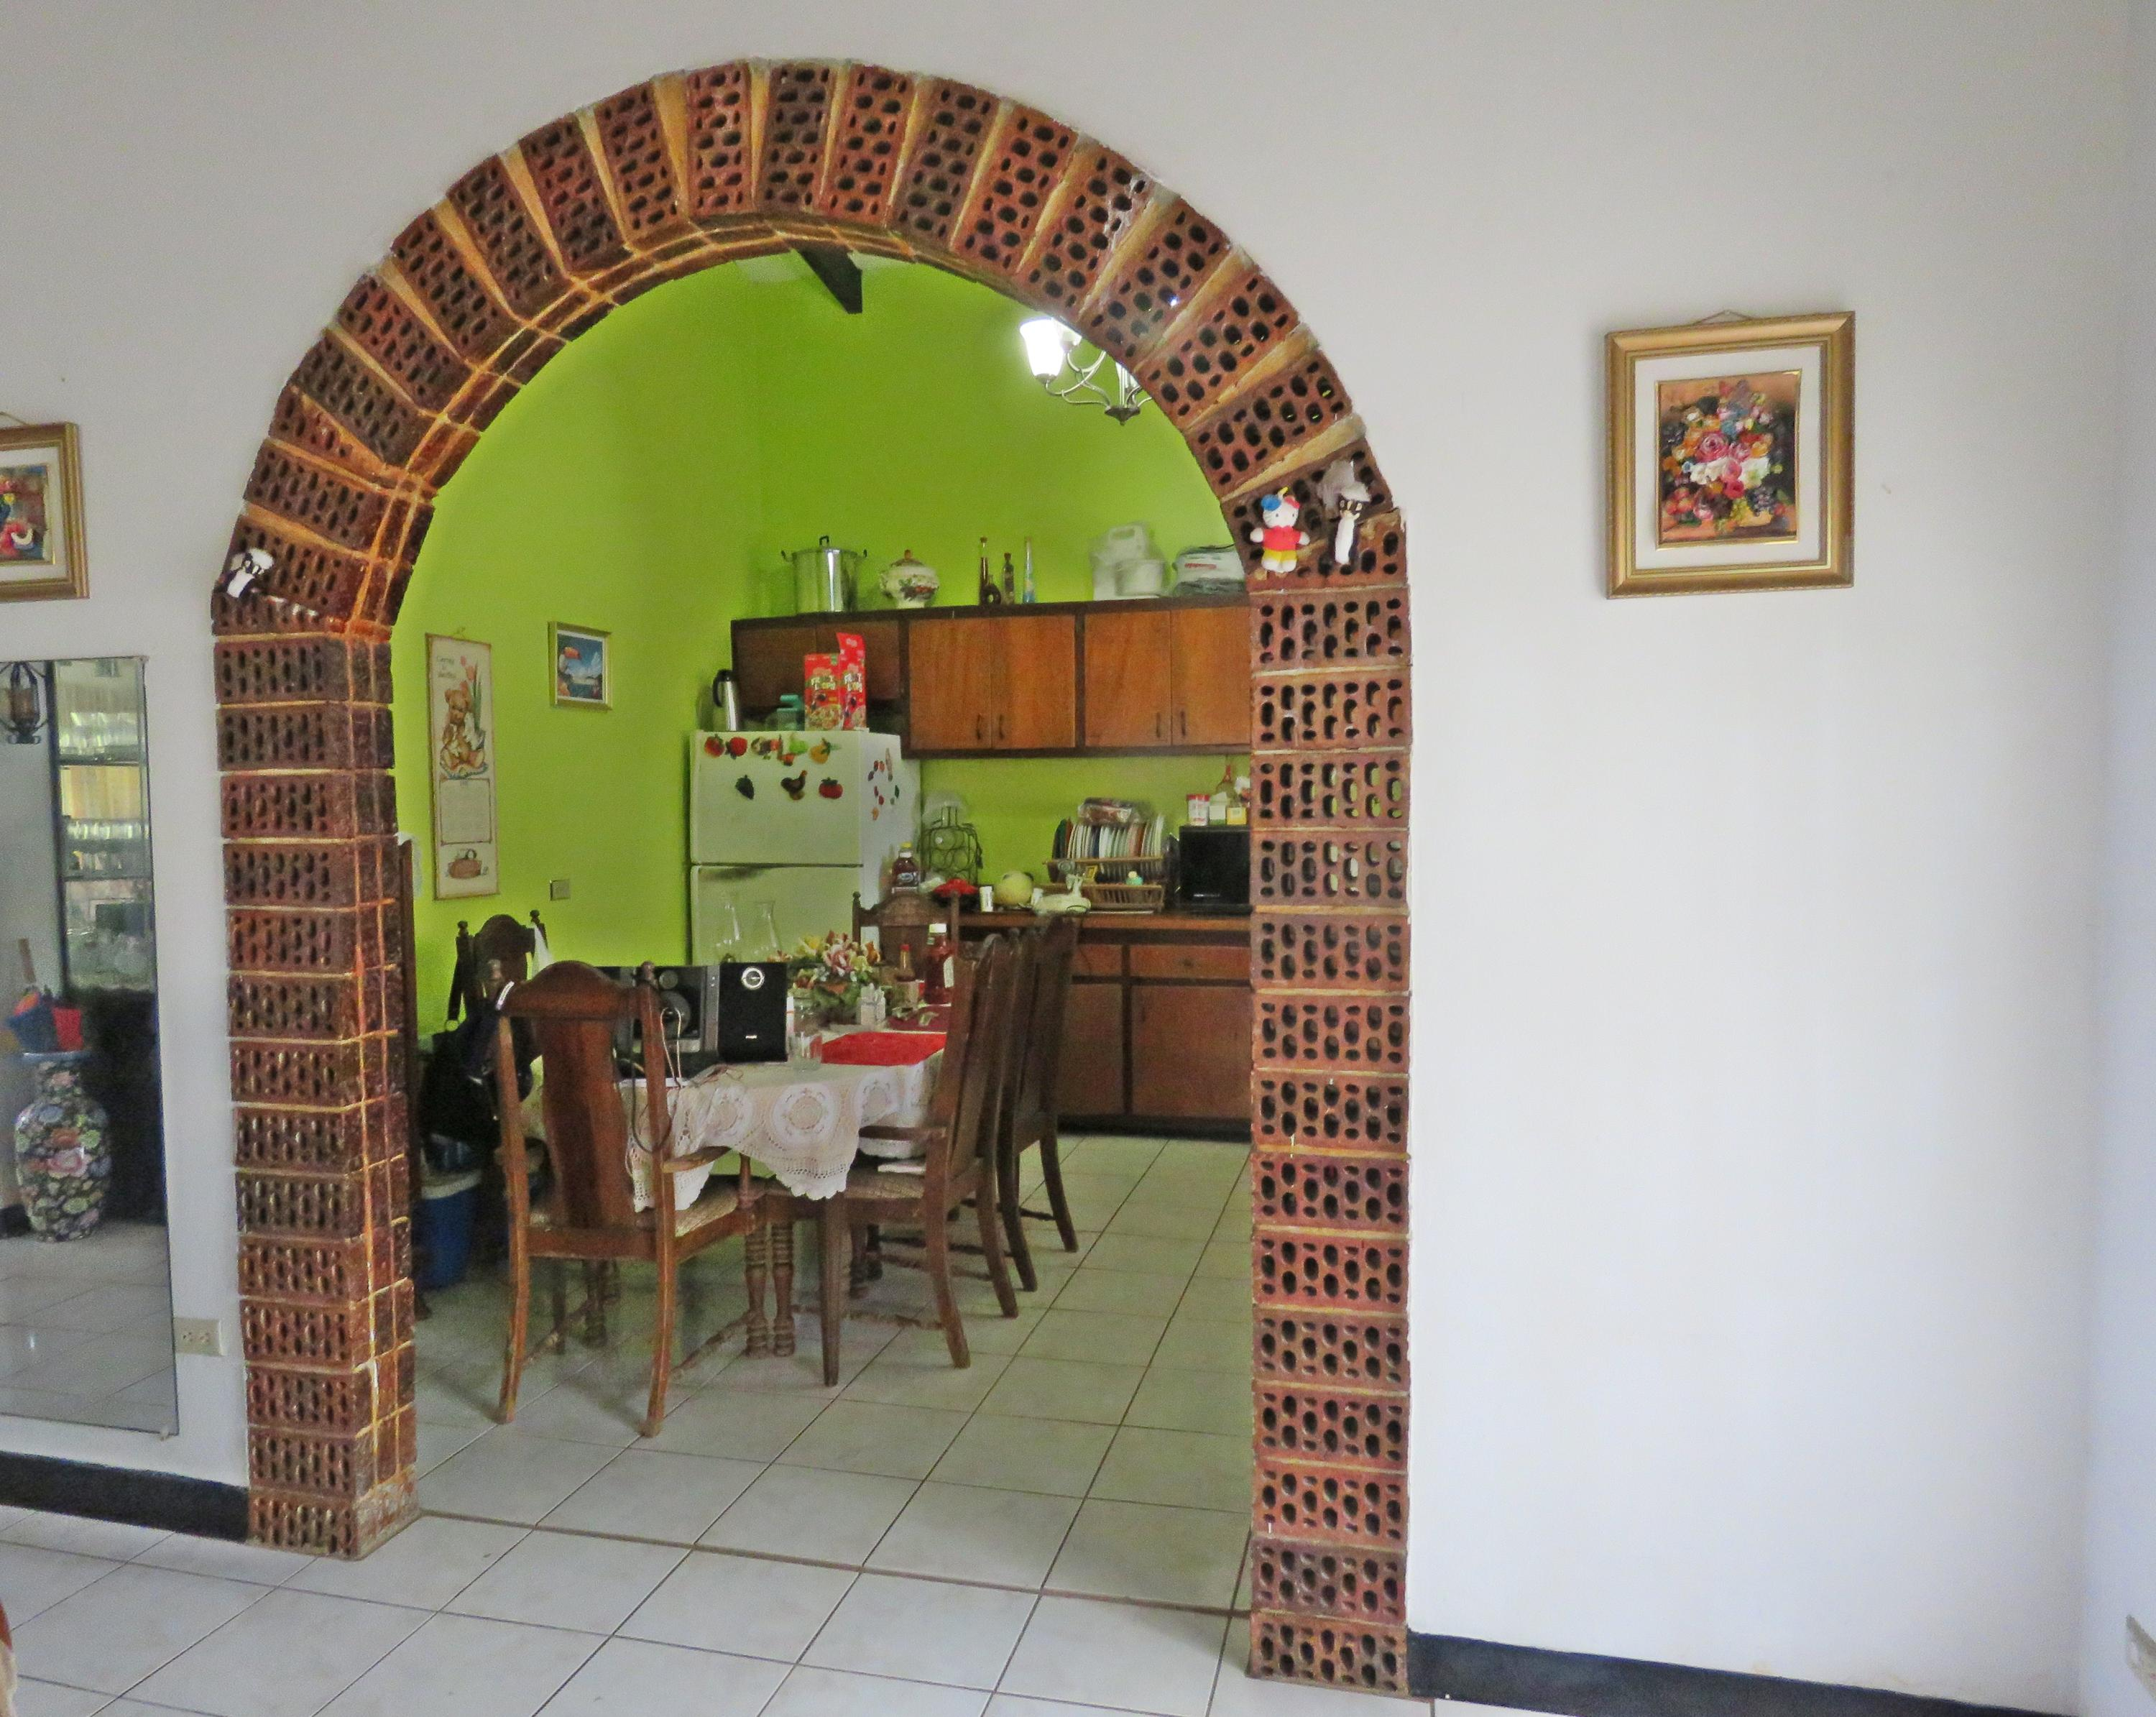 Kitchen doorway